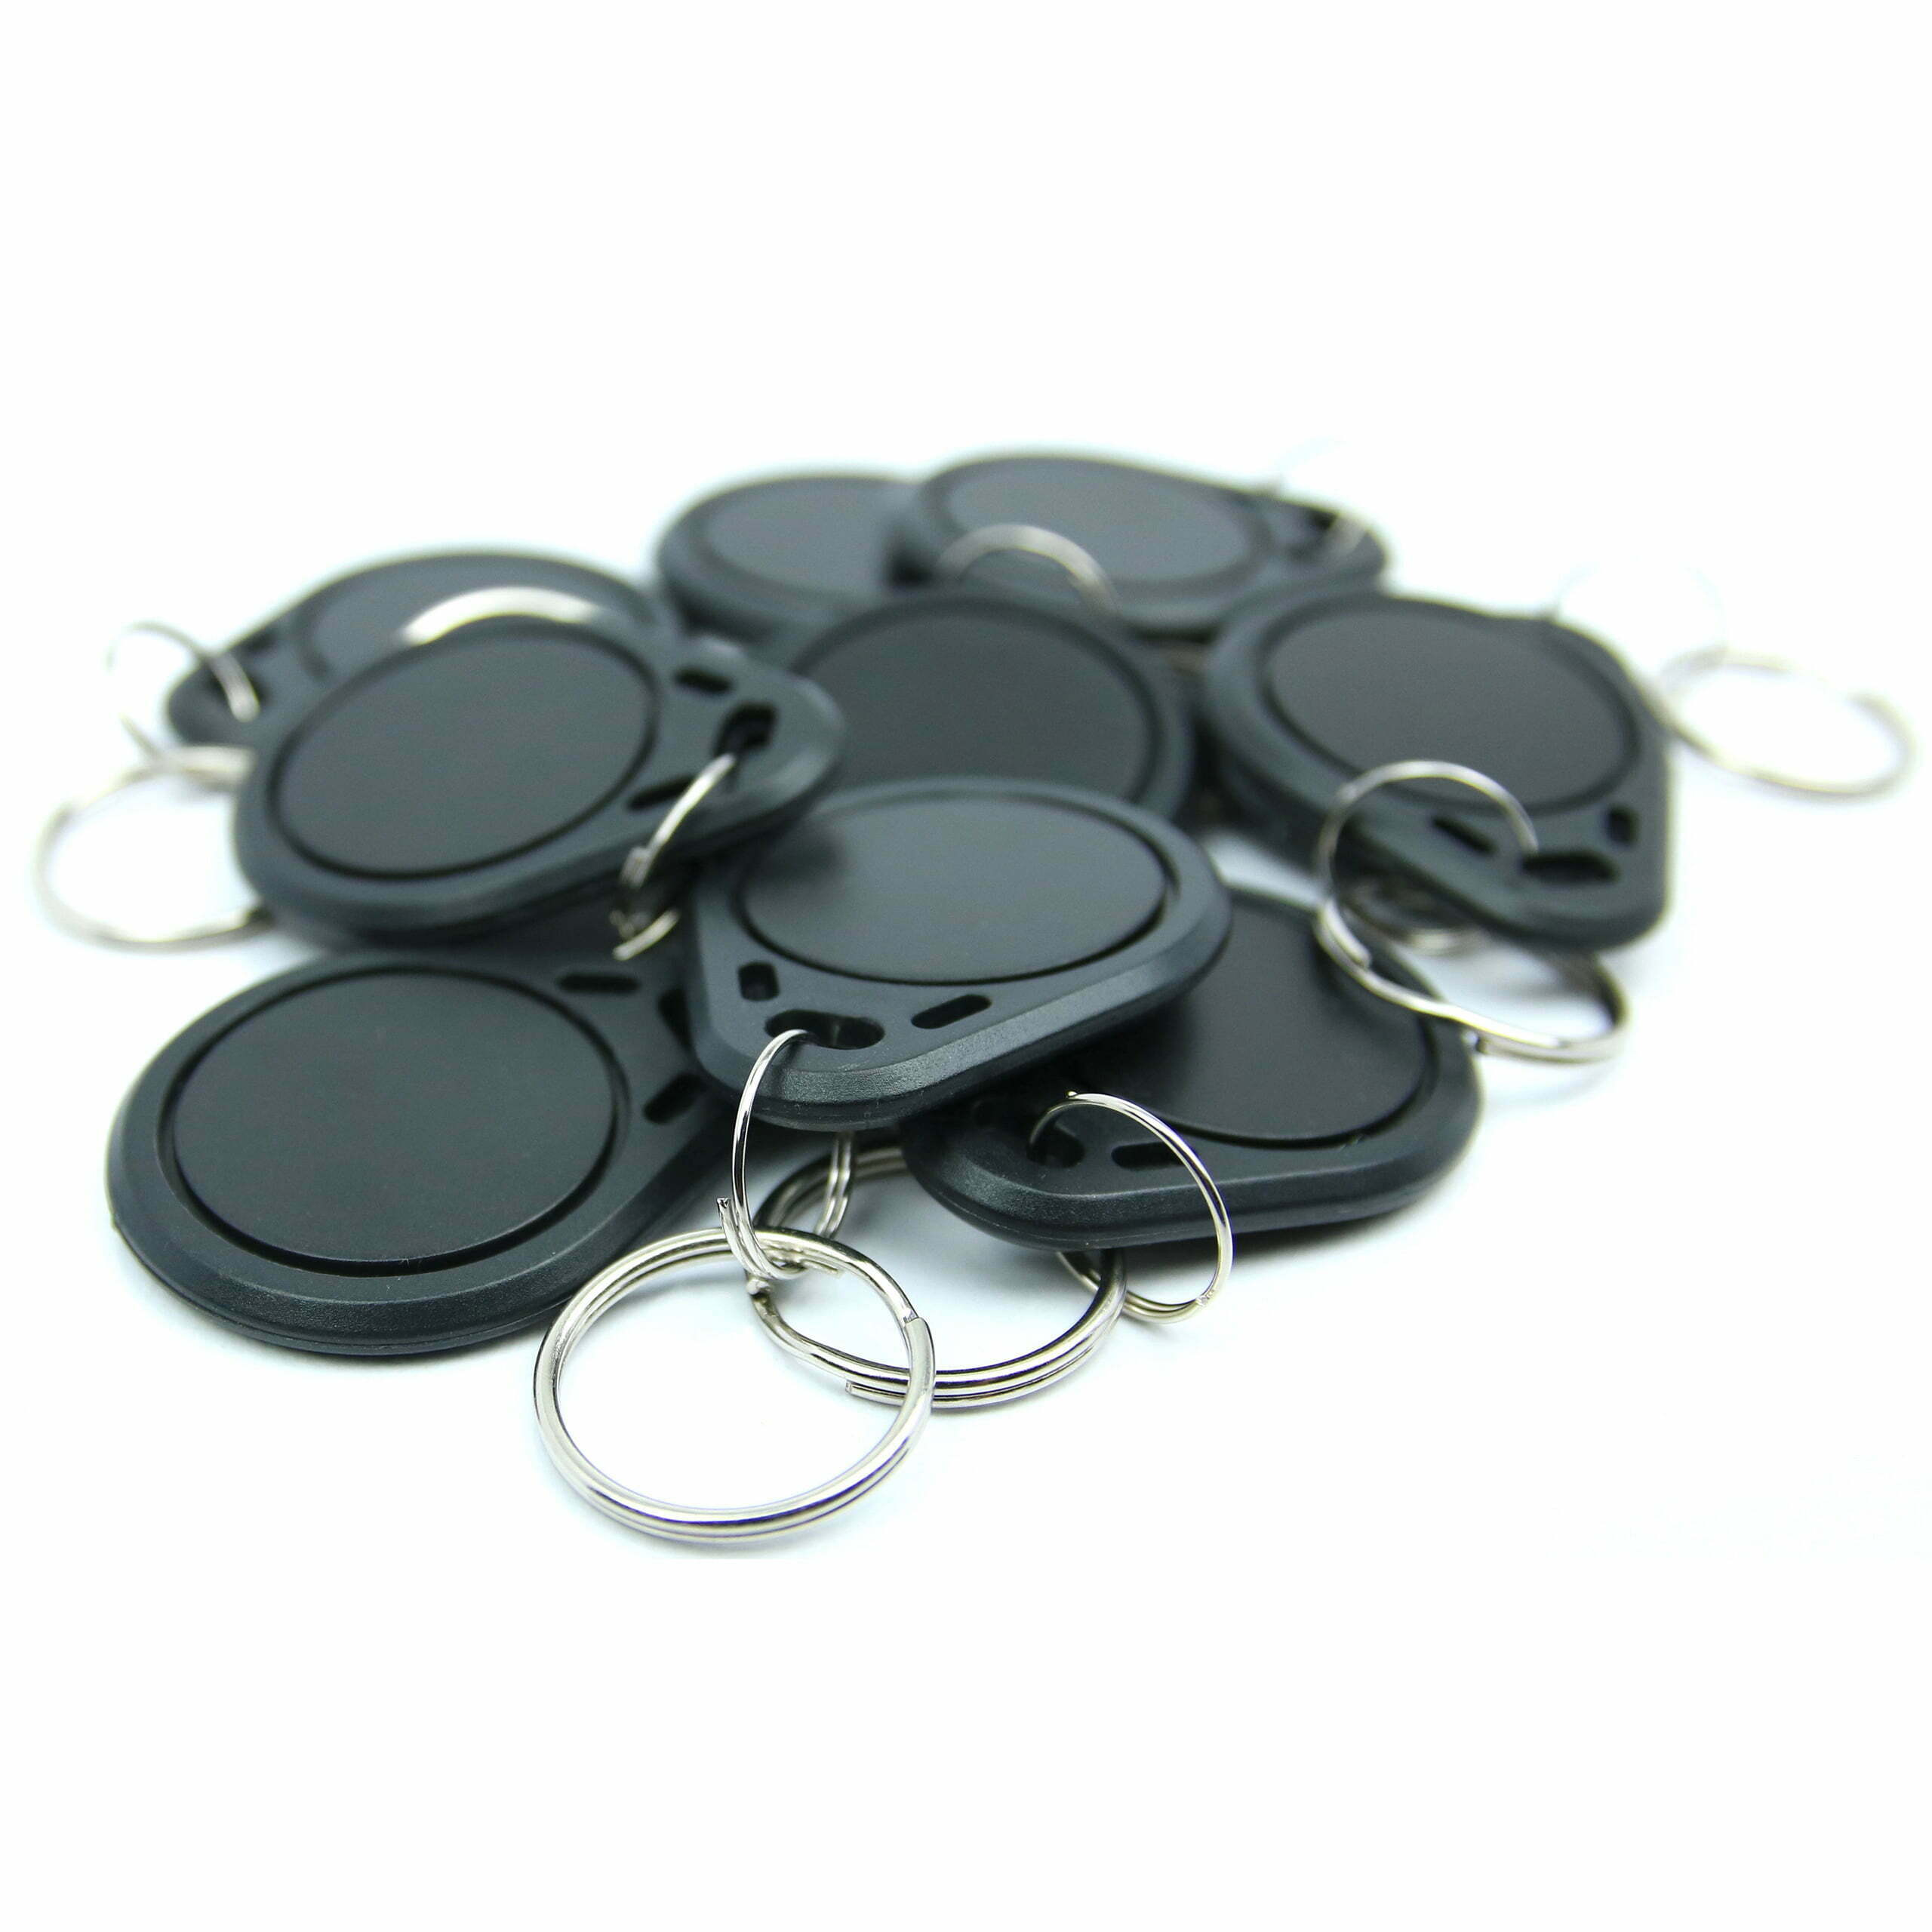 NFC Keyfob, 40 x 32 mm, MIFARE Ultralight EV1, 64 Byte